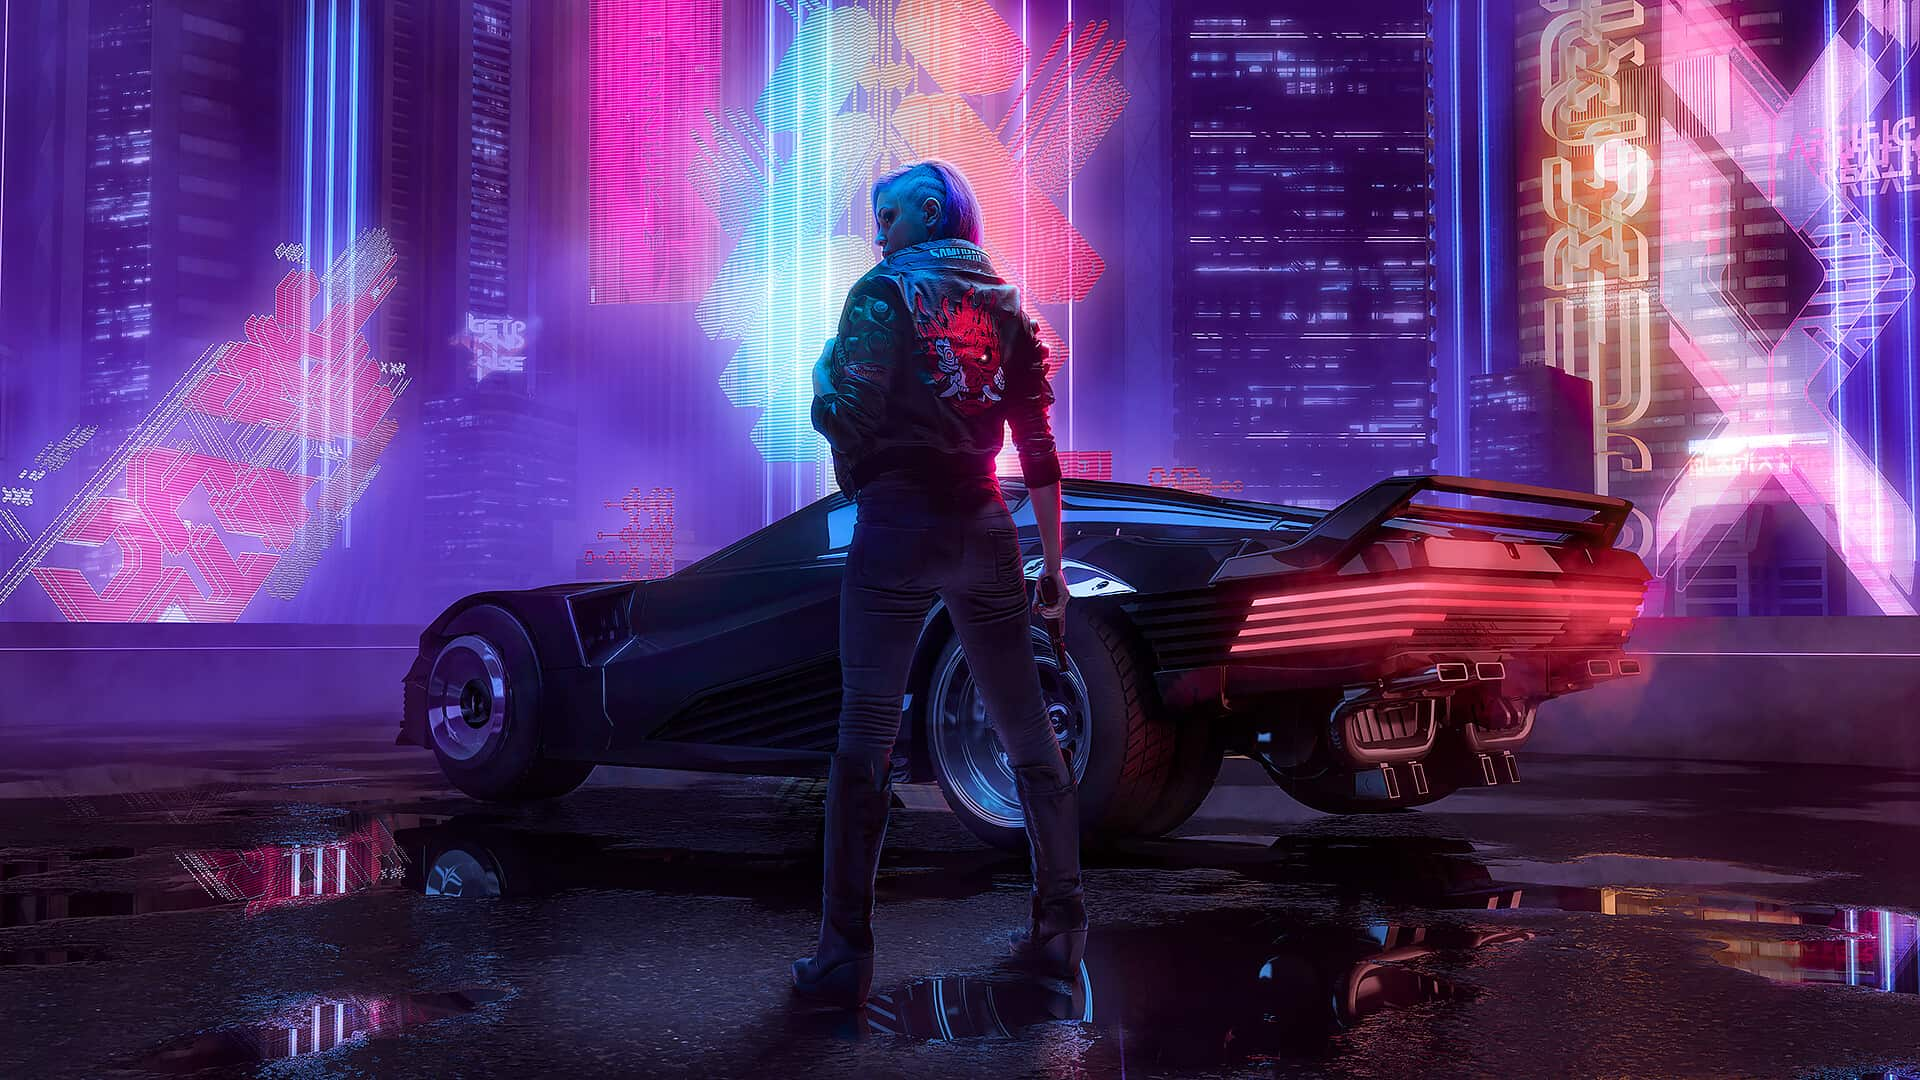 Cyberpunk 2077 Wallpaper For Your Chrome New Tab